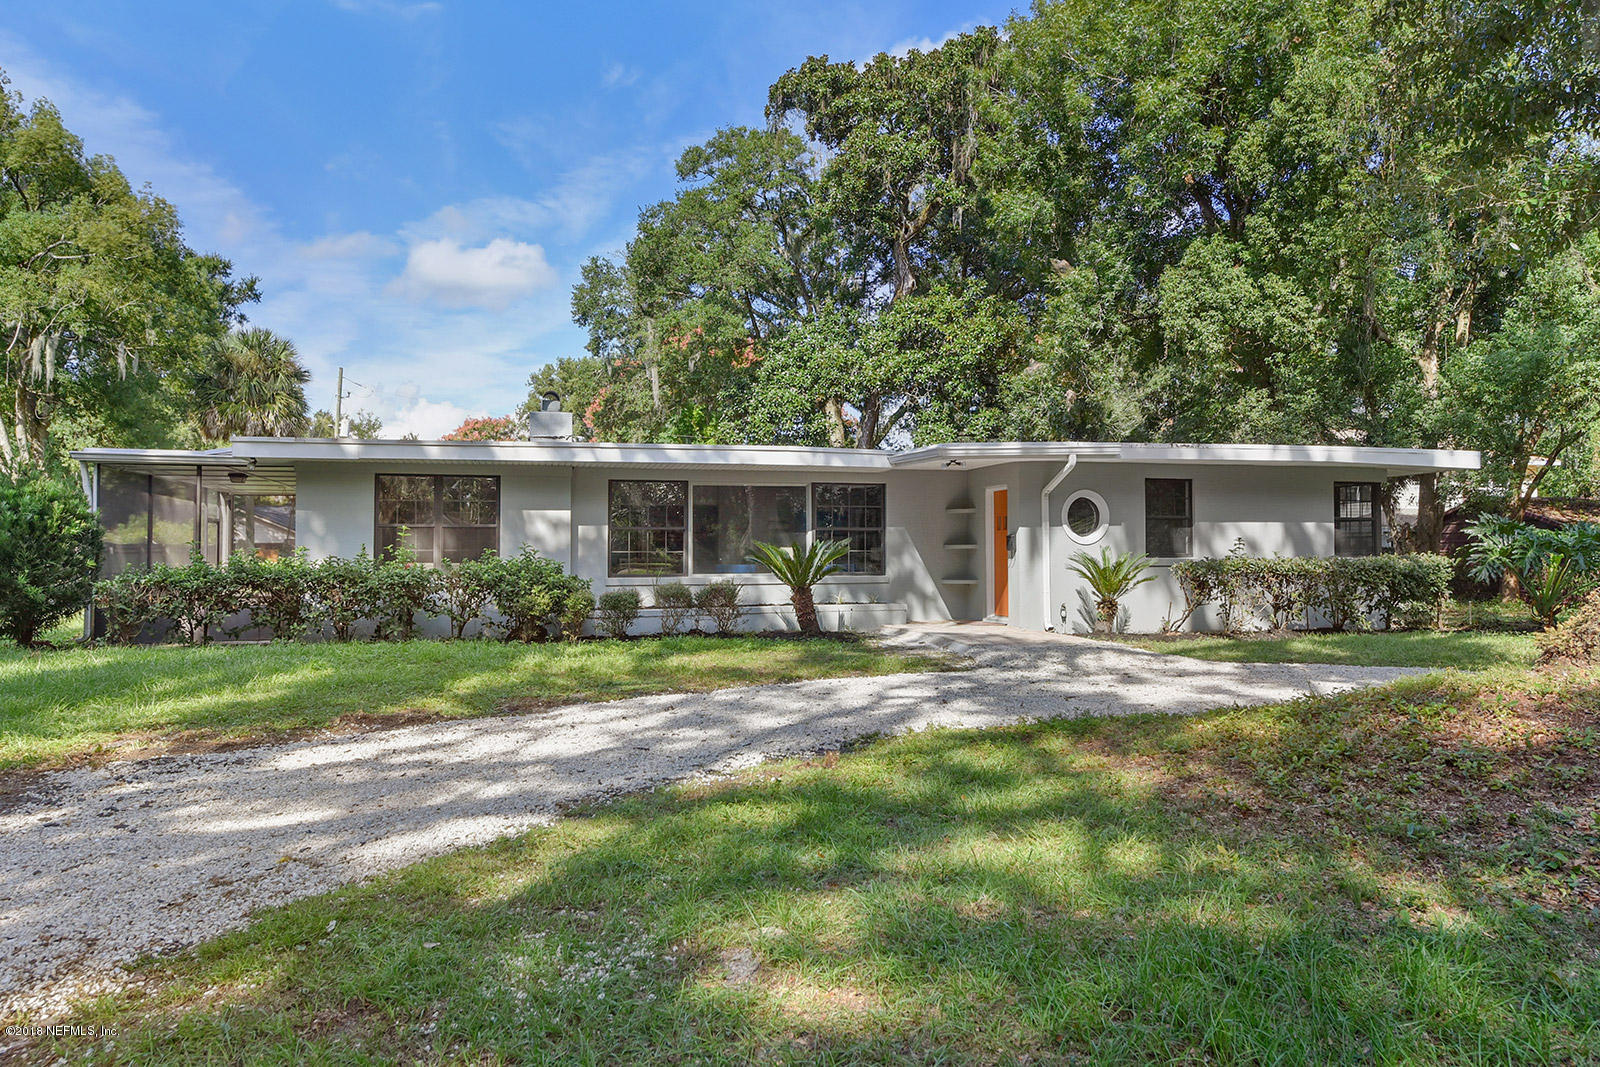 5633 CLIFTON, JACKSONVILLE, FLORIDA 32211, 4 Bedrooms Bedrooms, ,3 BathroomsBathrooms,Residential - single family,For sale,CLIFTON,963988